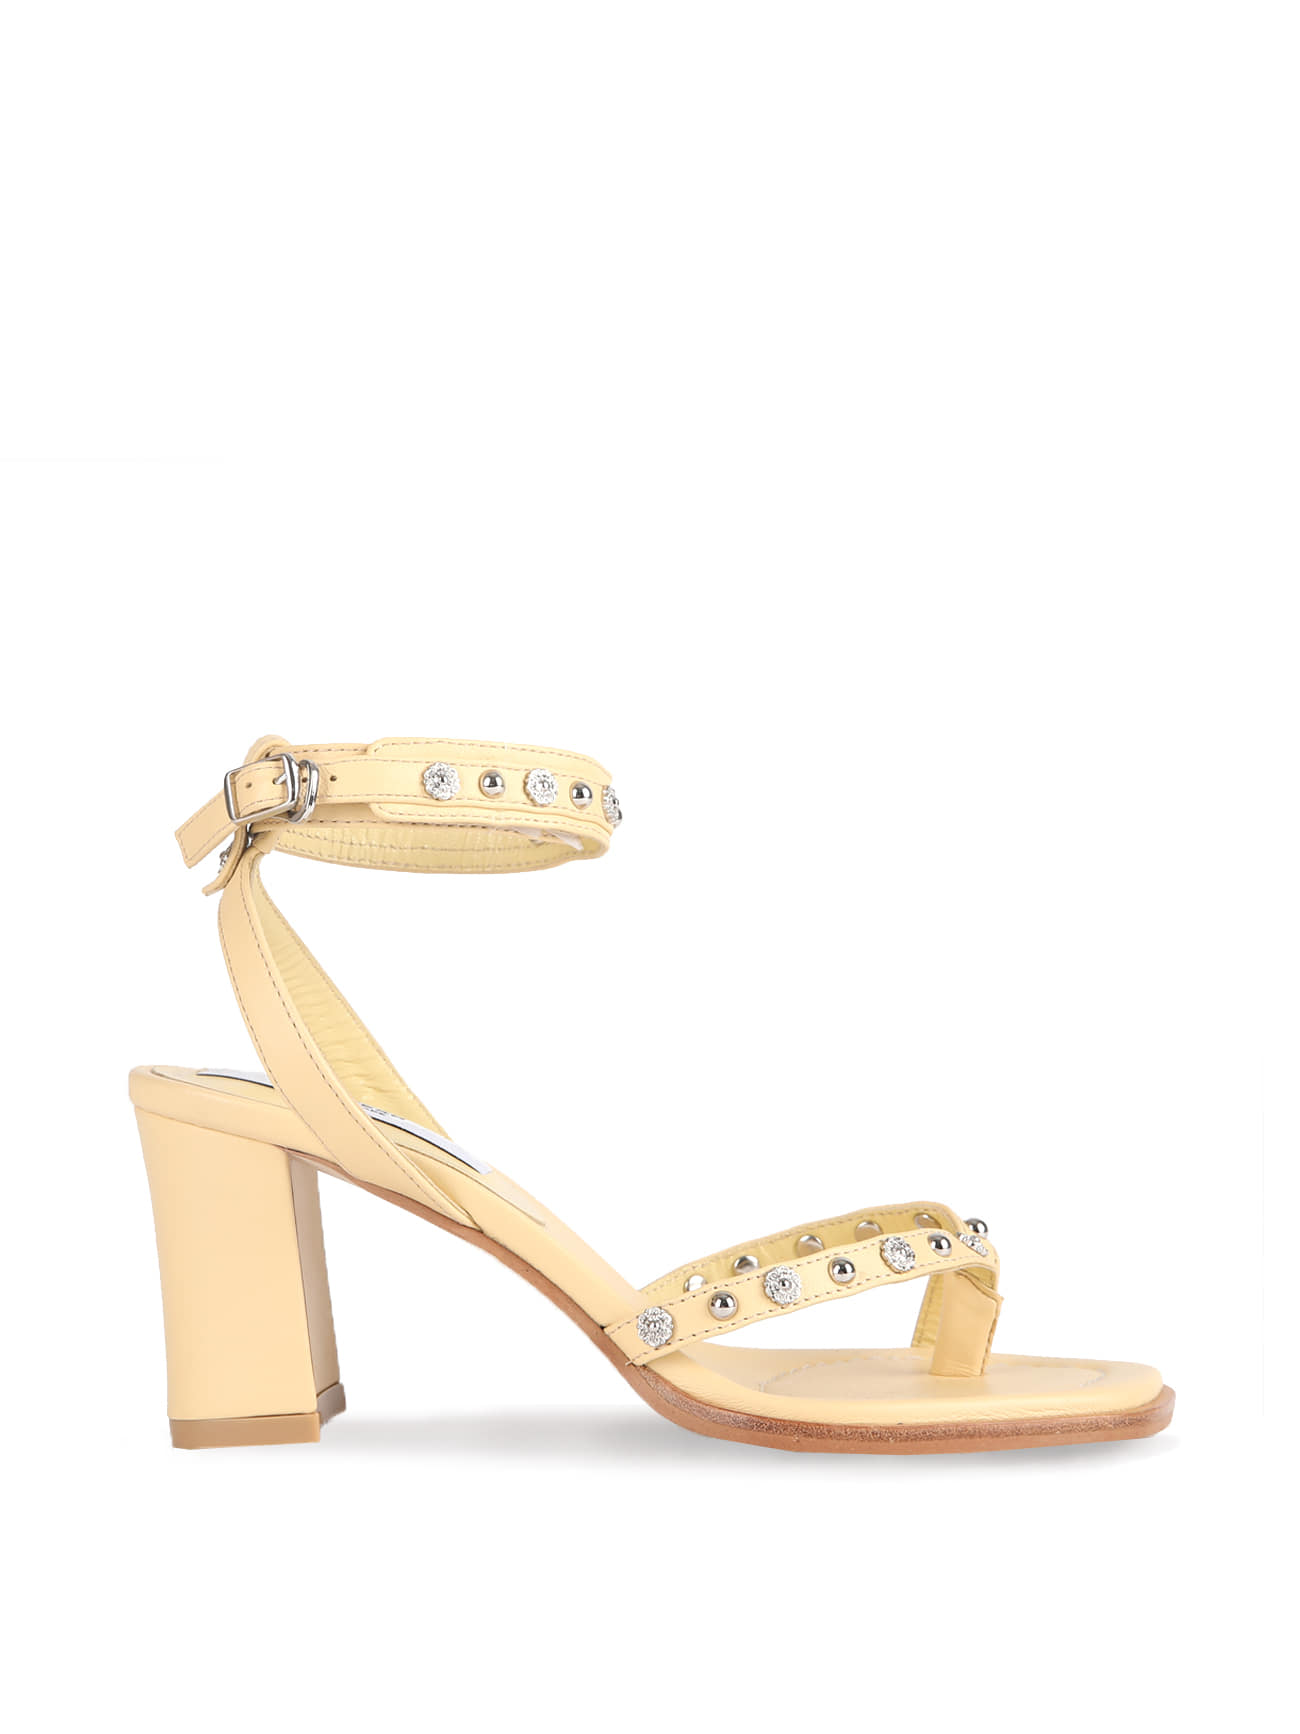 Studded Strap Sandals - Lemon Beige